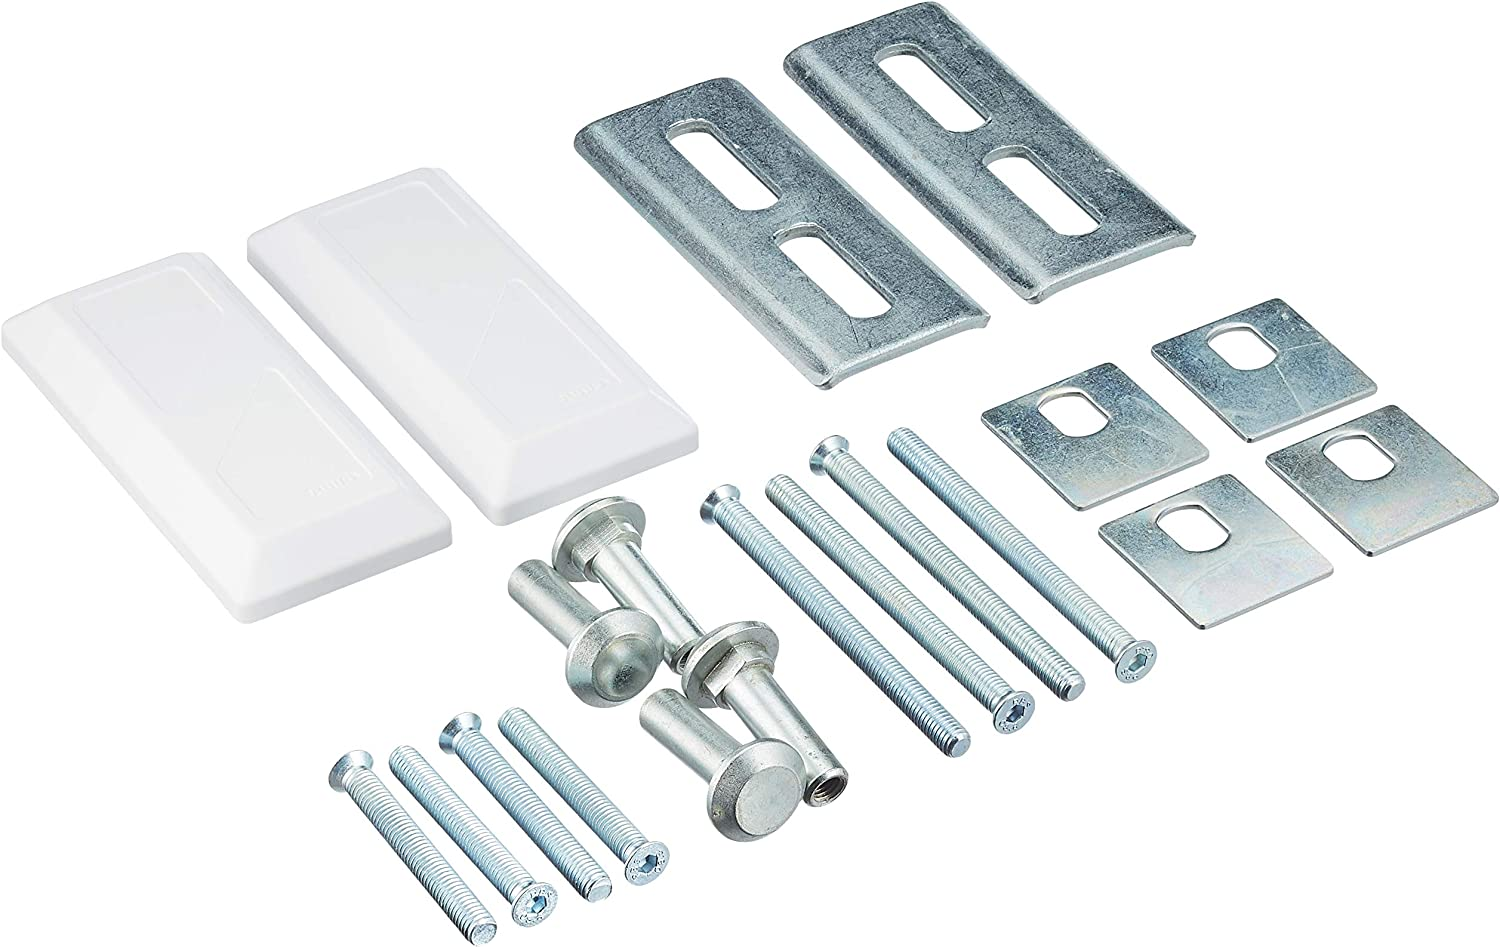 ABUS 10660 PA1018 Fixing Sale special price Set Direct sale of manufacturer for White by Locks Bolt Reinforced